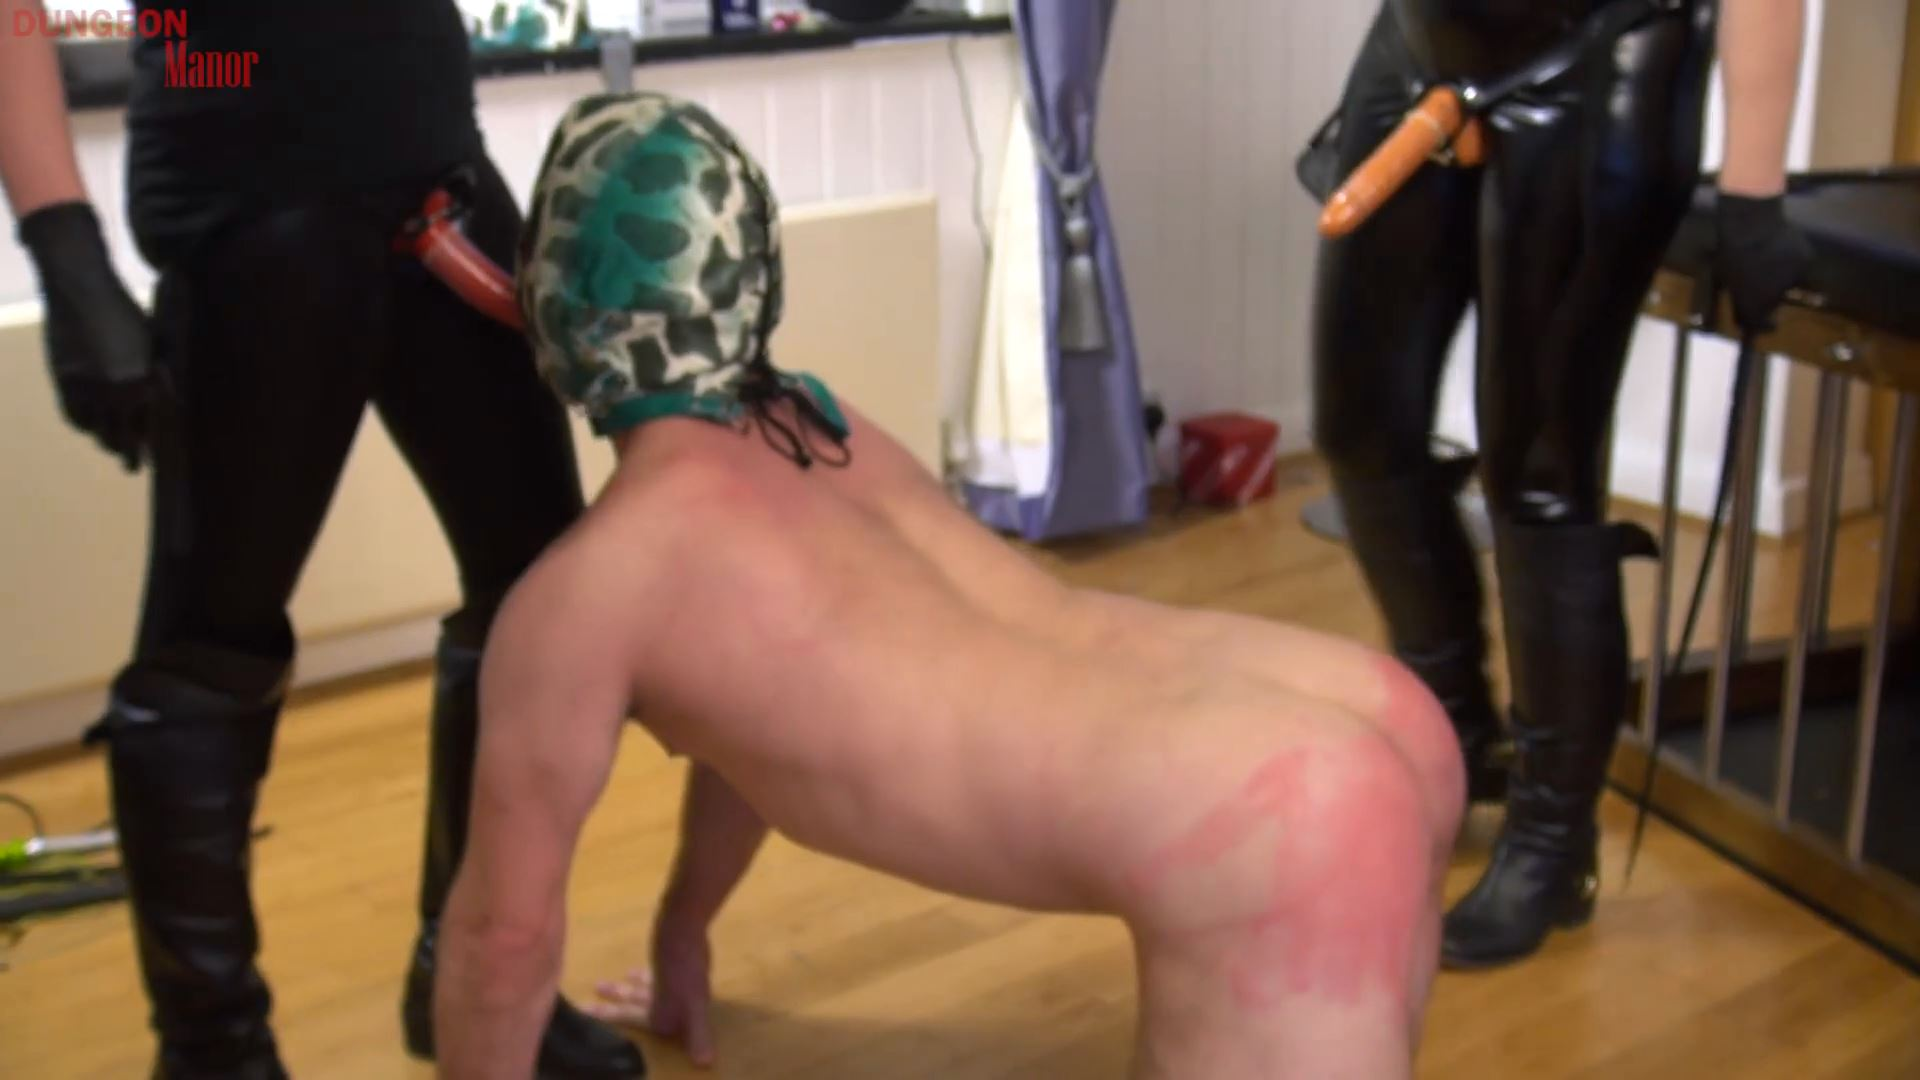 A dungeon Manor Production 433 - MISTRESS EVILYNE - FULL HD/1080p/MP4